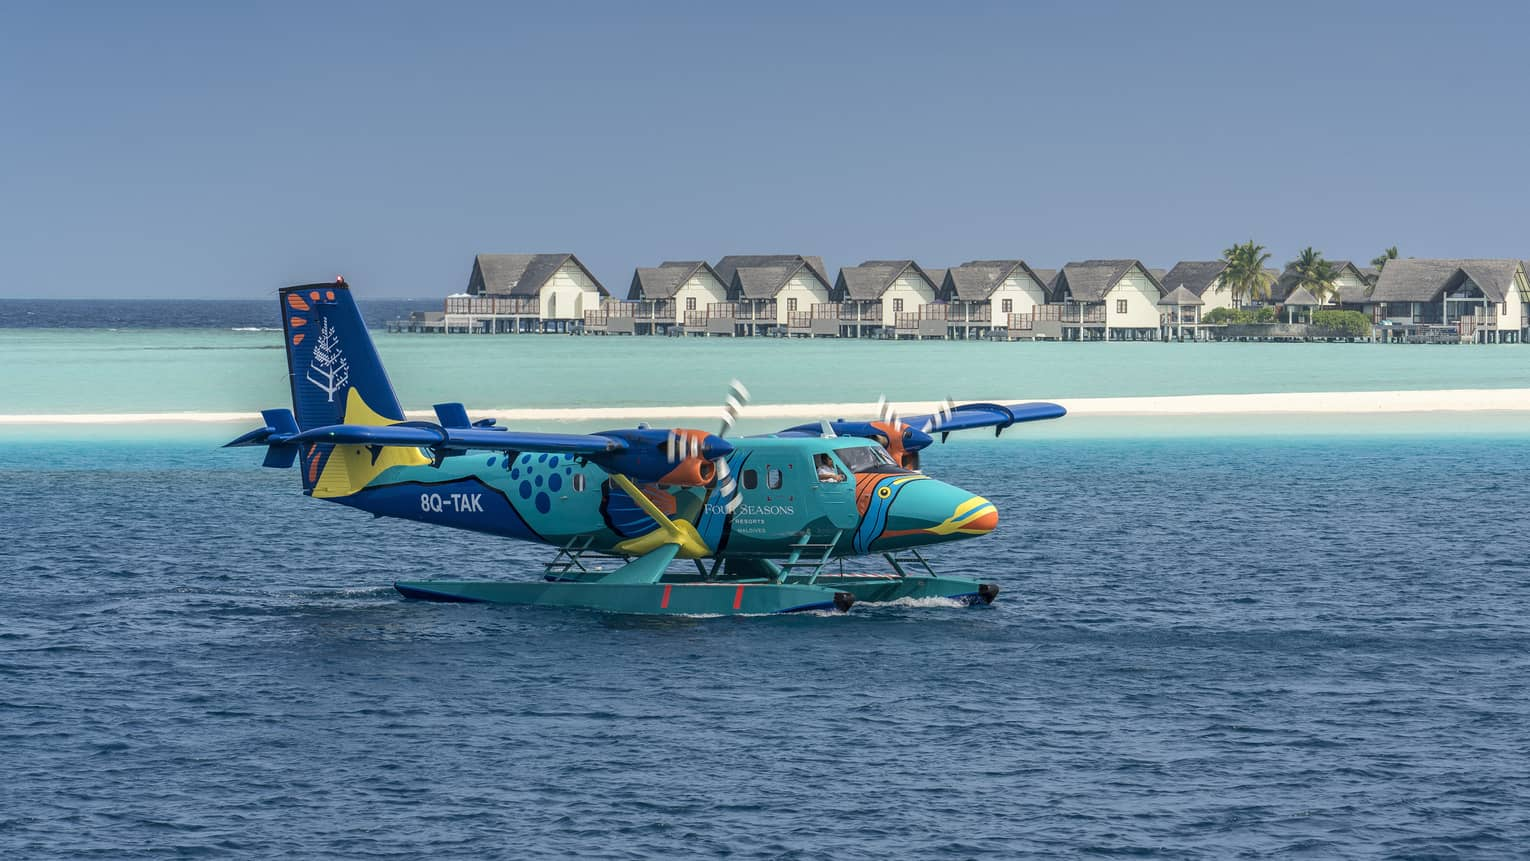 The Four Seasons sea plane landing on calm water in front of beach houses and palm trees